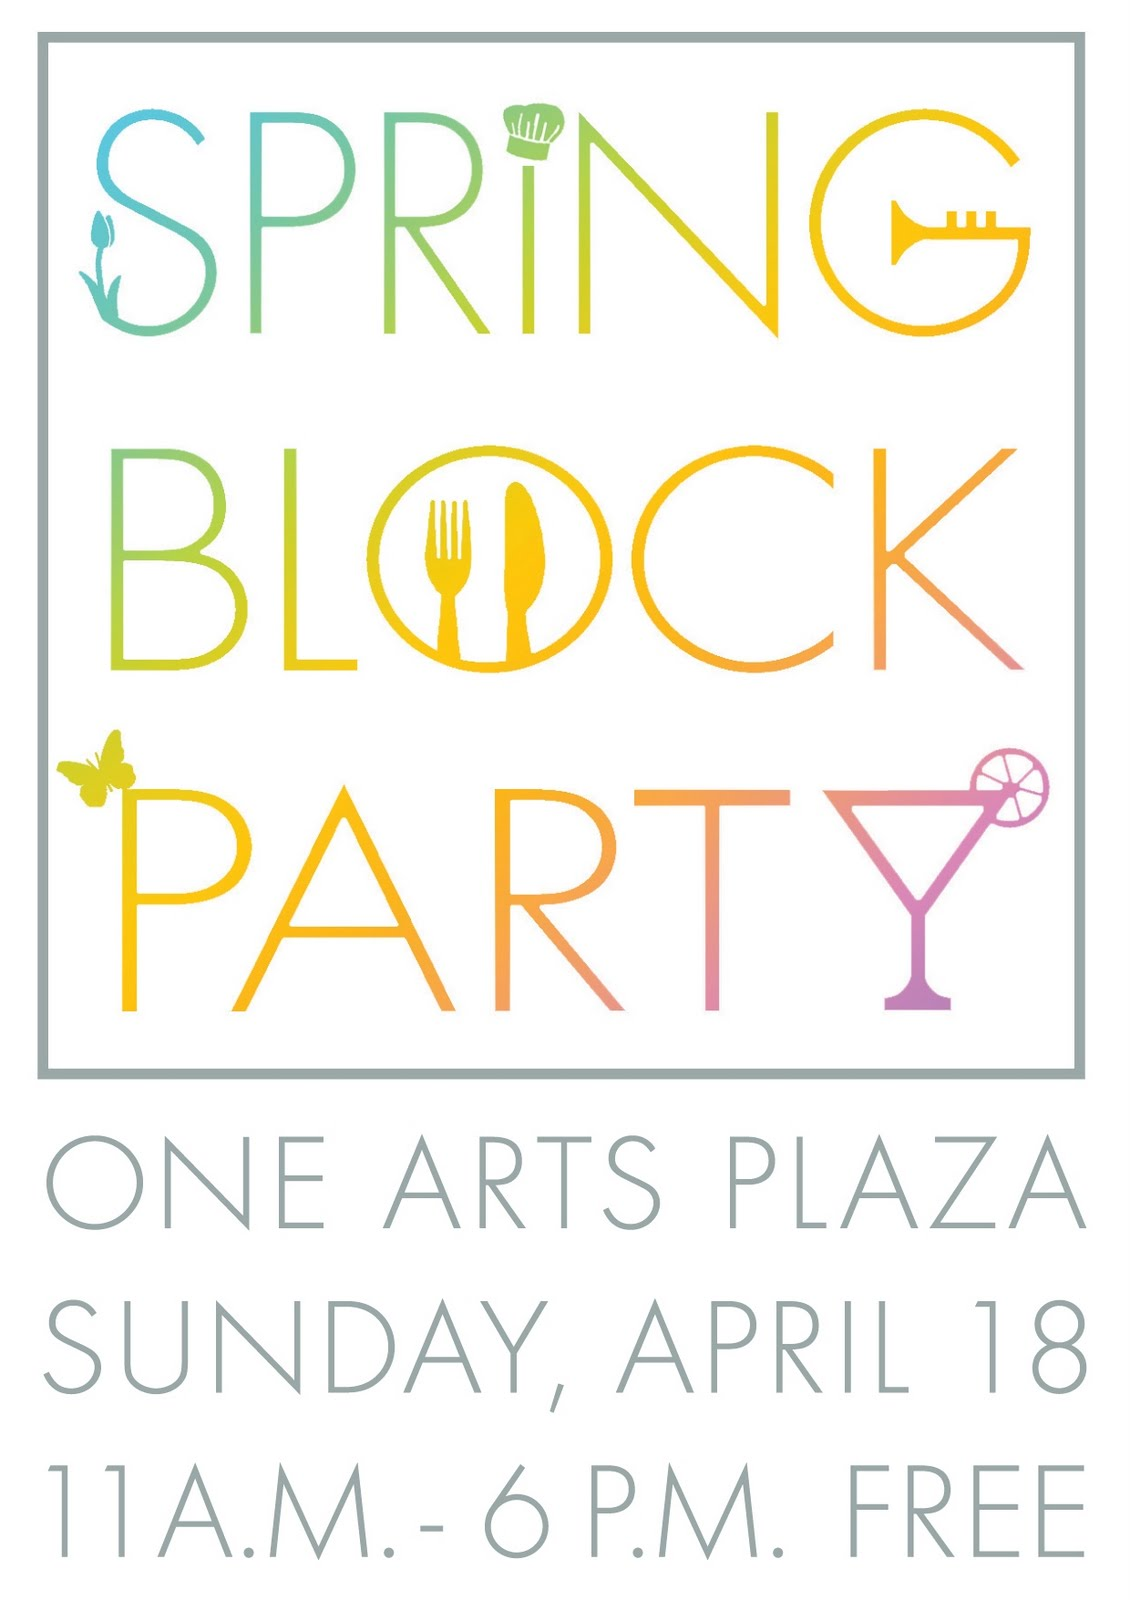 One Arts Plaza: Spring Block Party